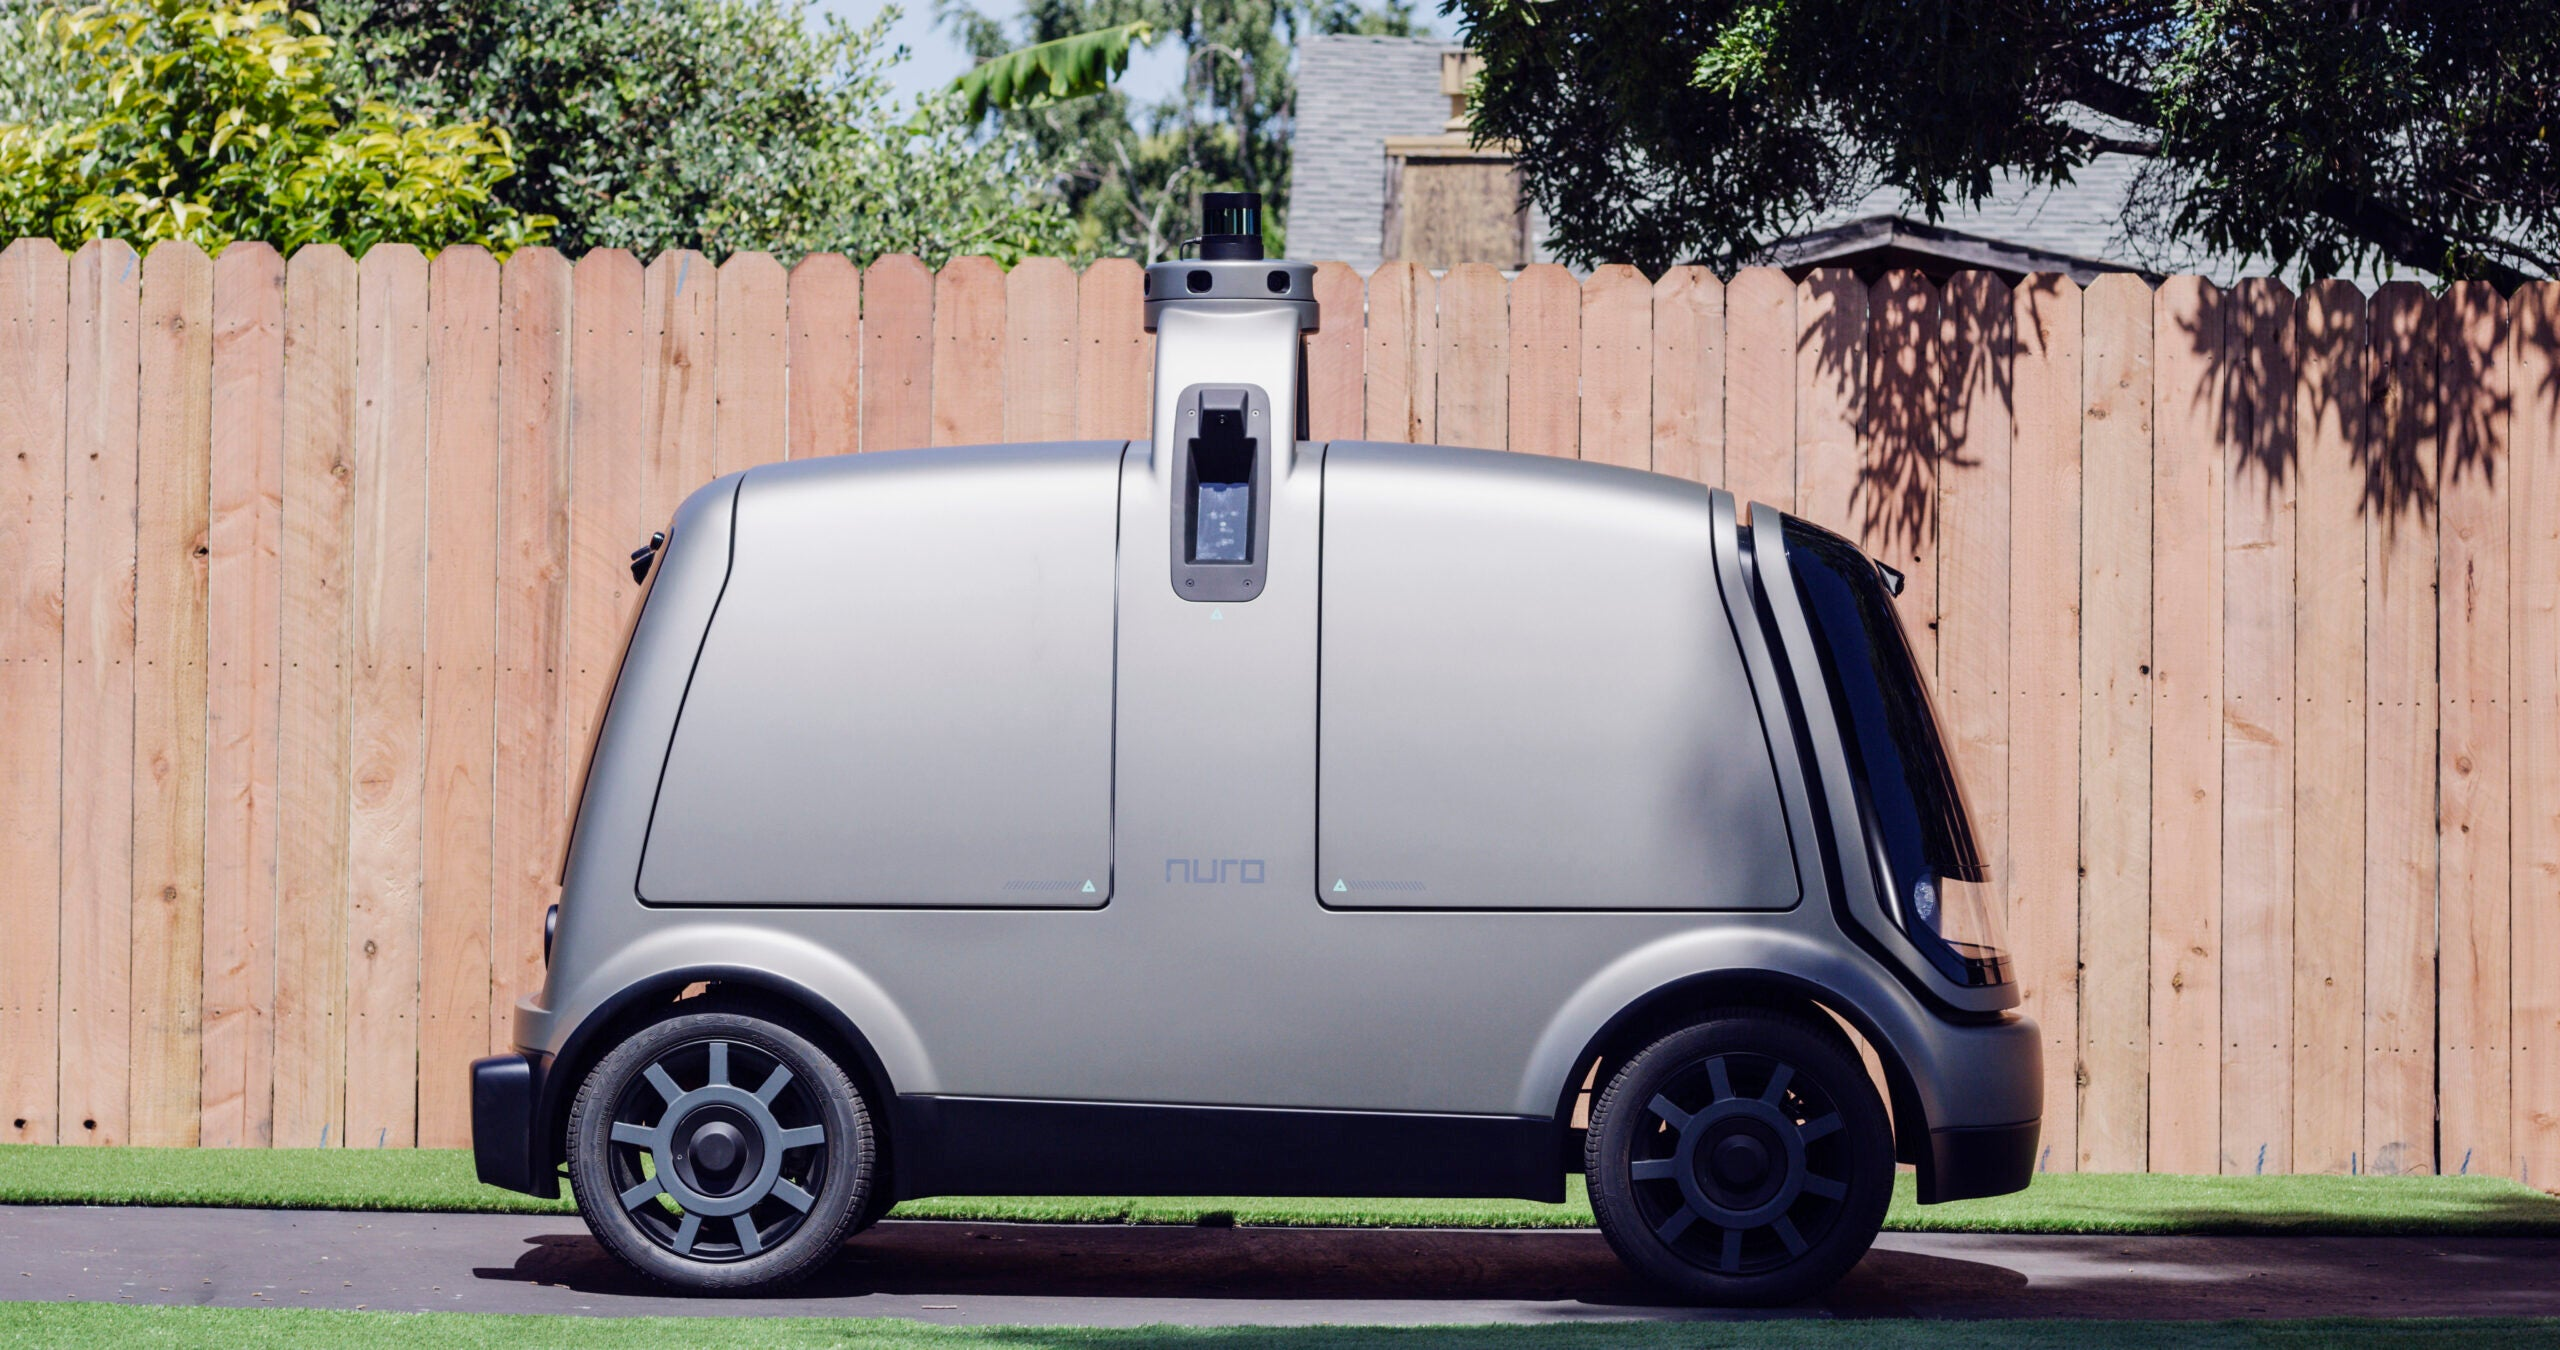 This self-driving grocery delivery car will sacrifice itself to save pedestrians